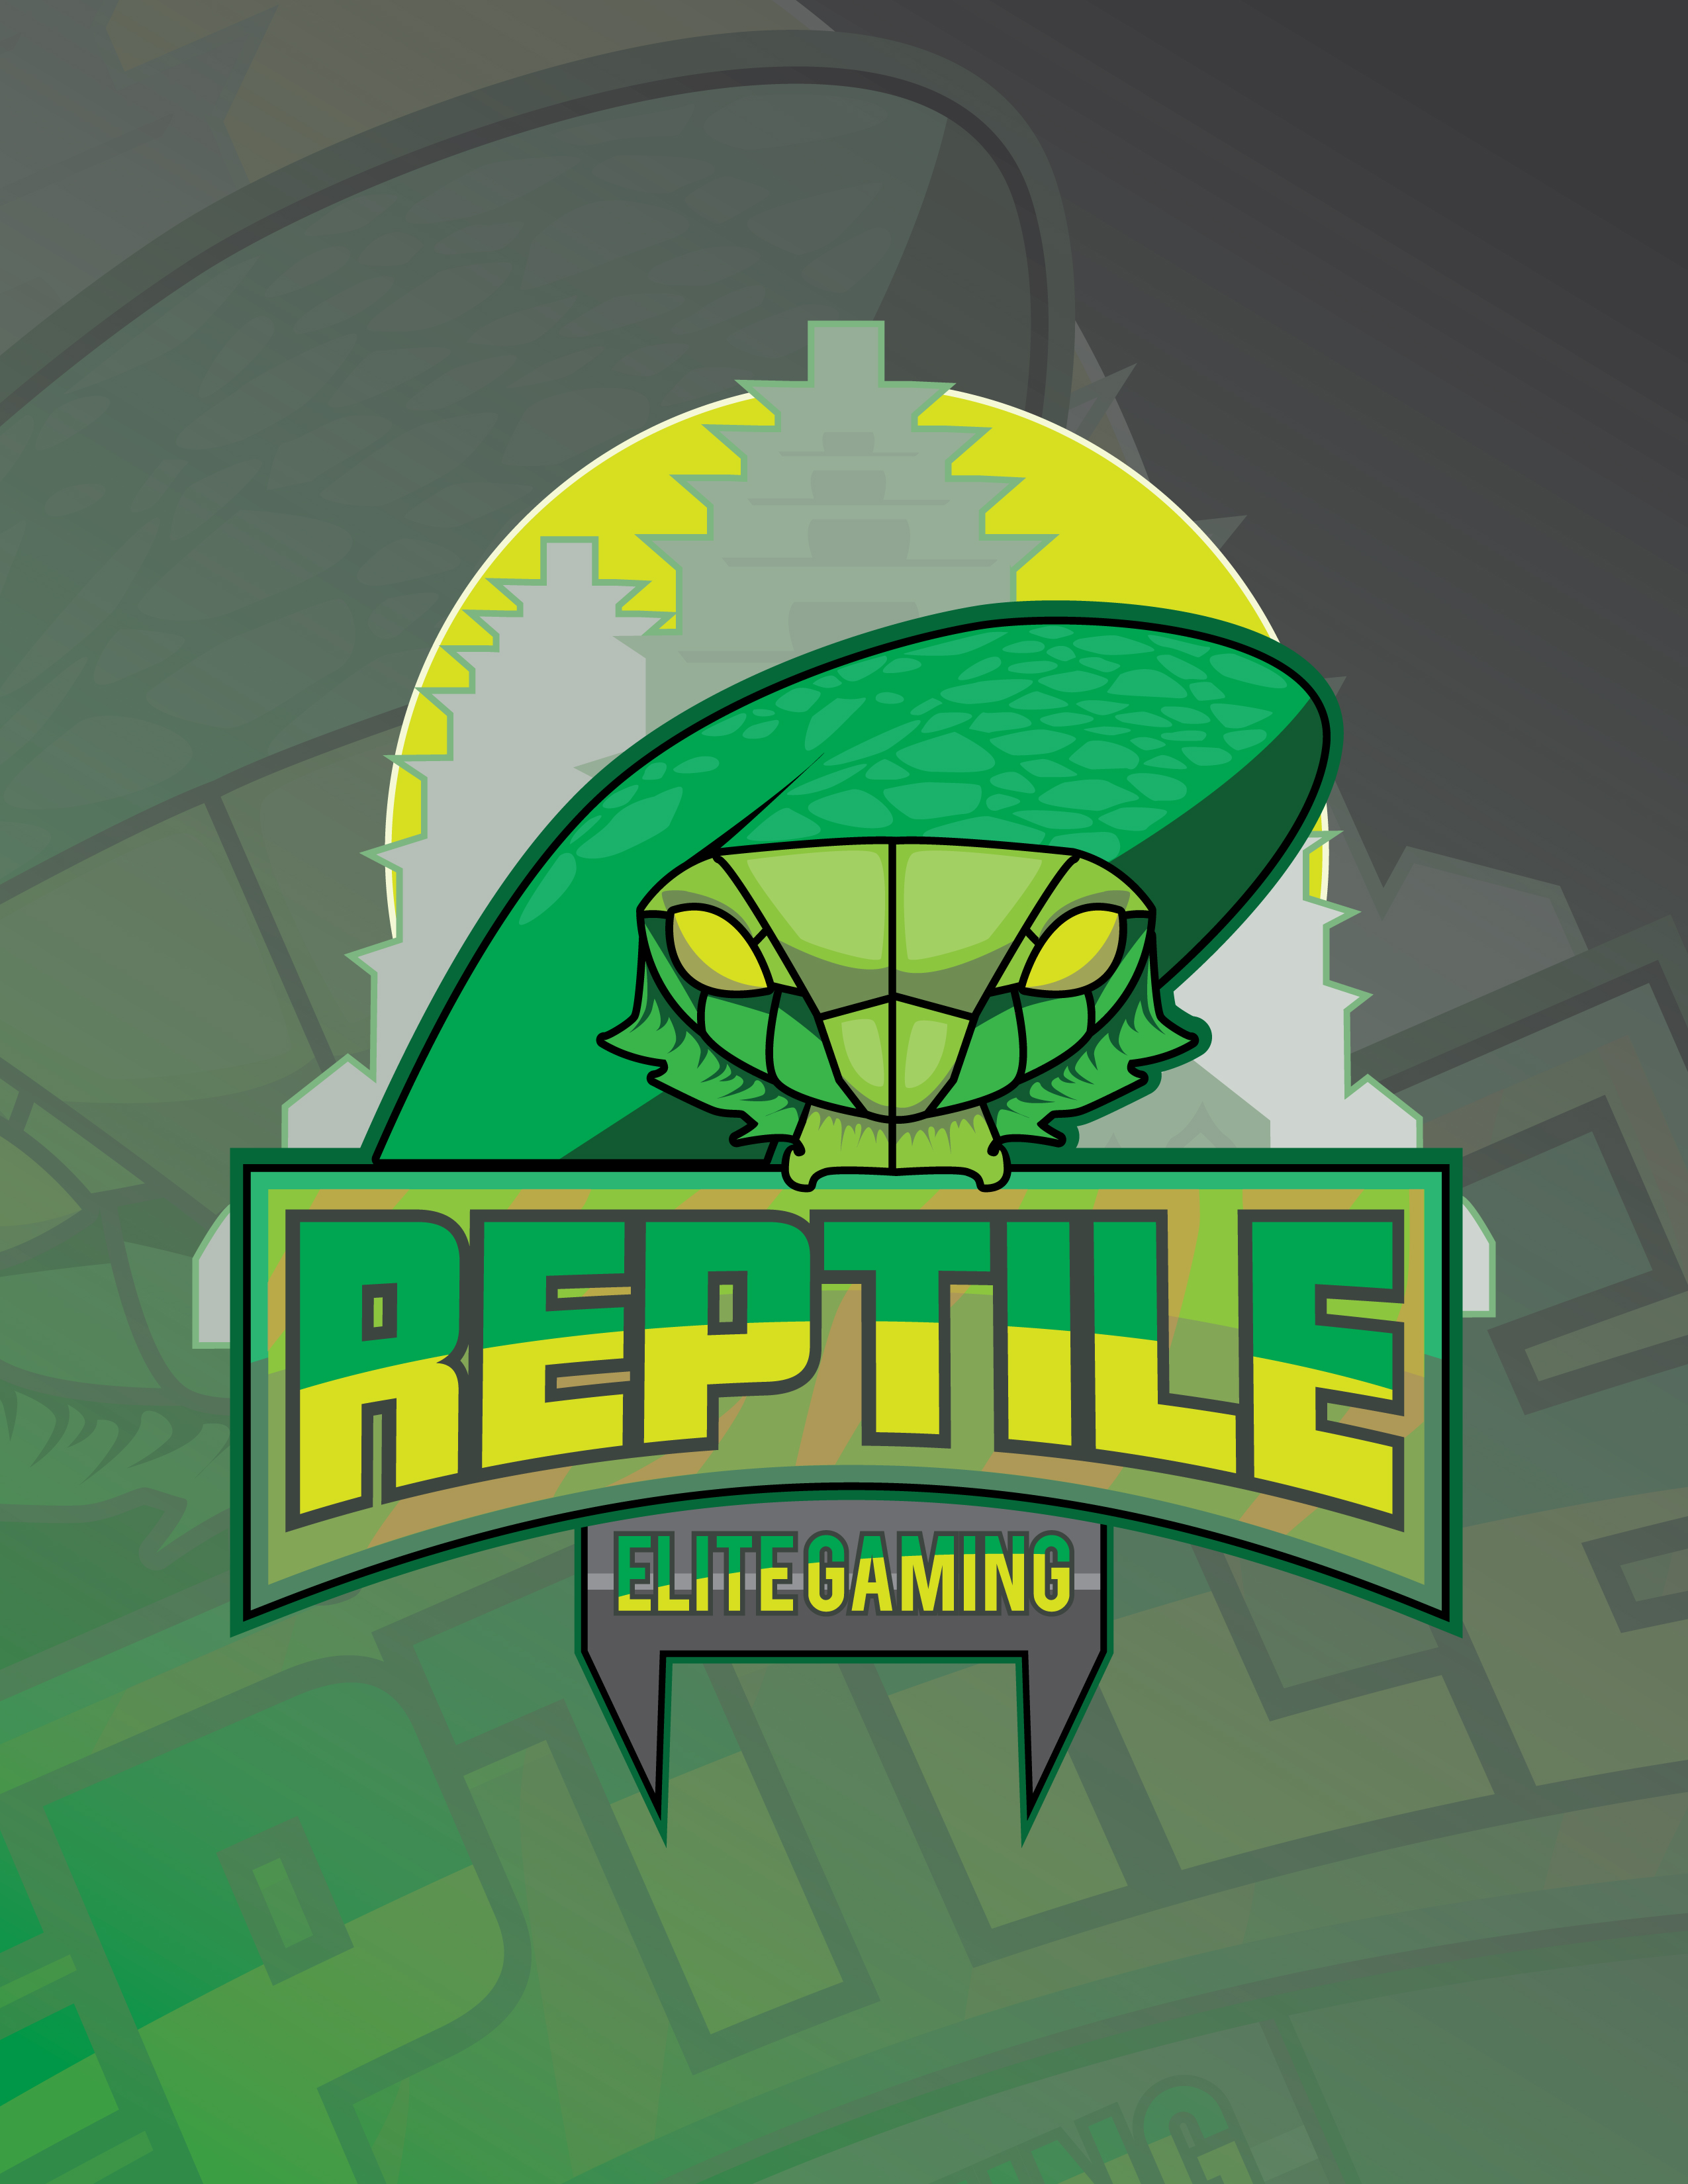 Reptile Elite Gaming - E-Sports Logo